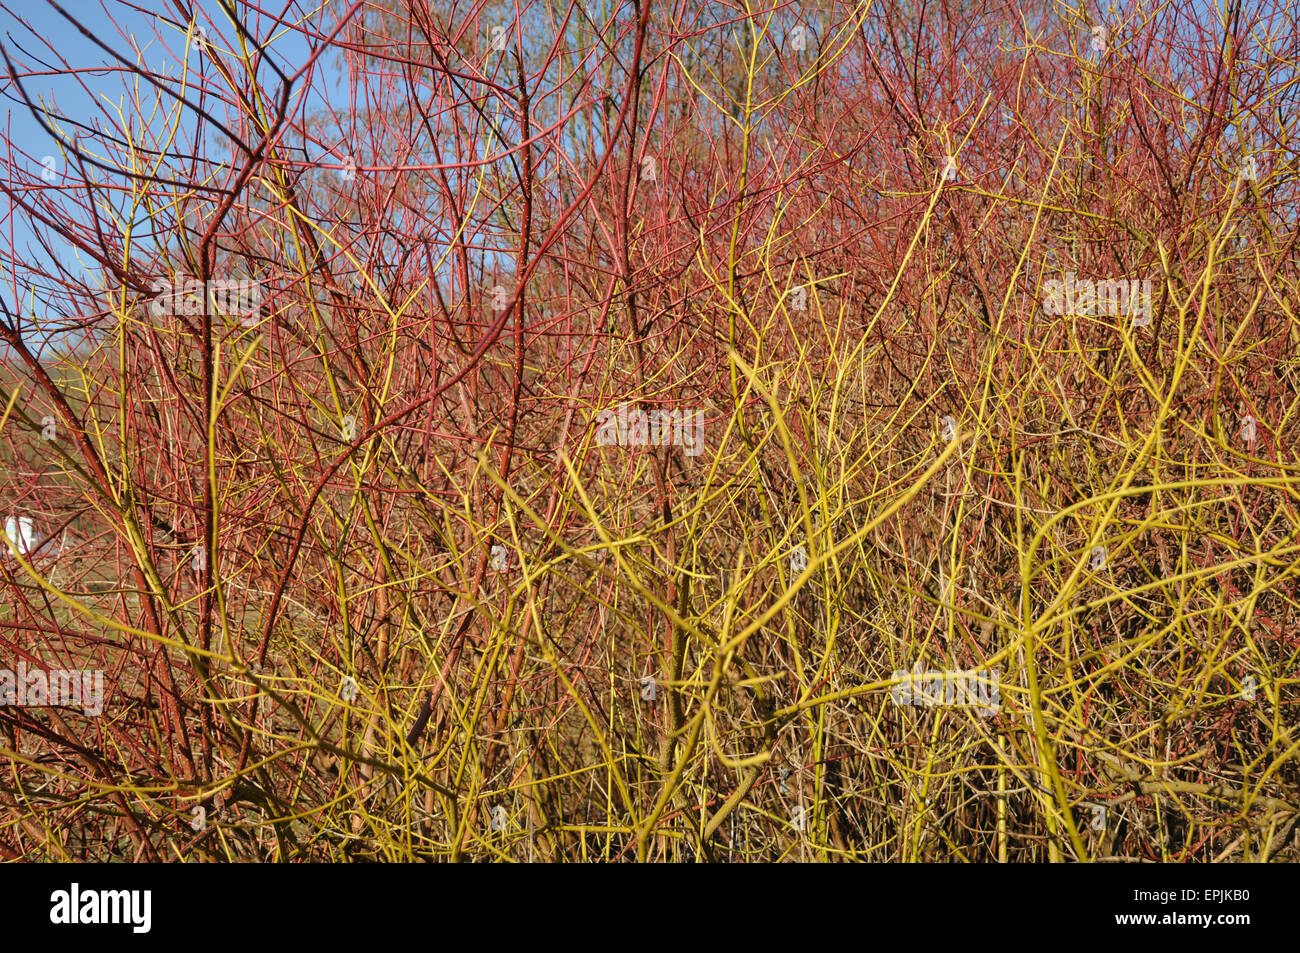 Siberian dogwood and golden twig - Stock Image